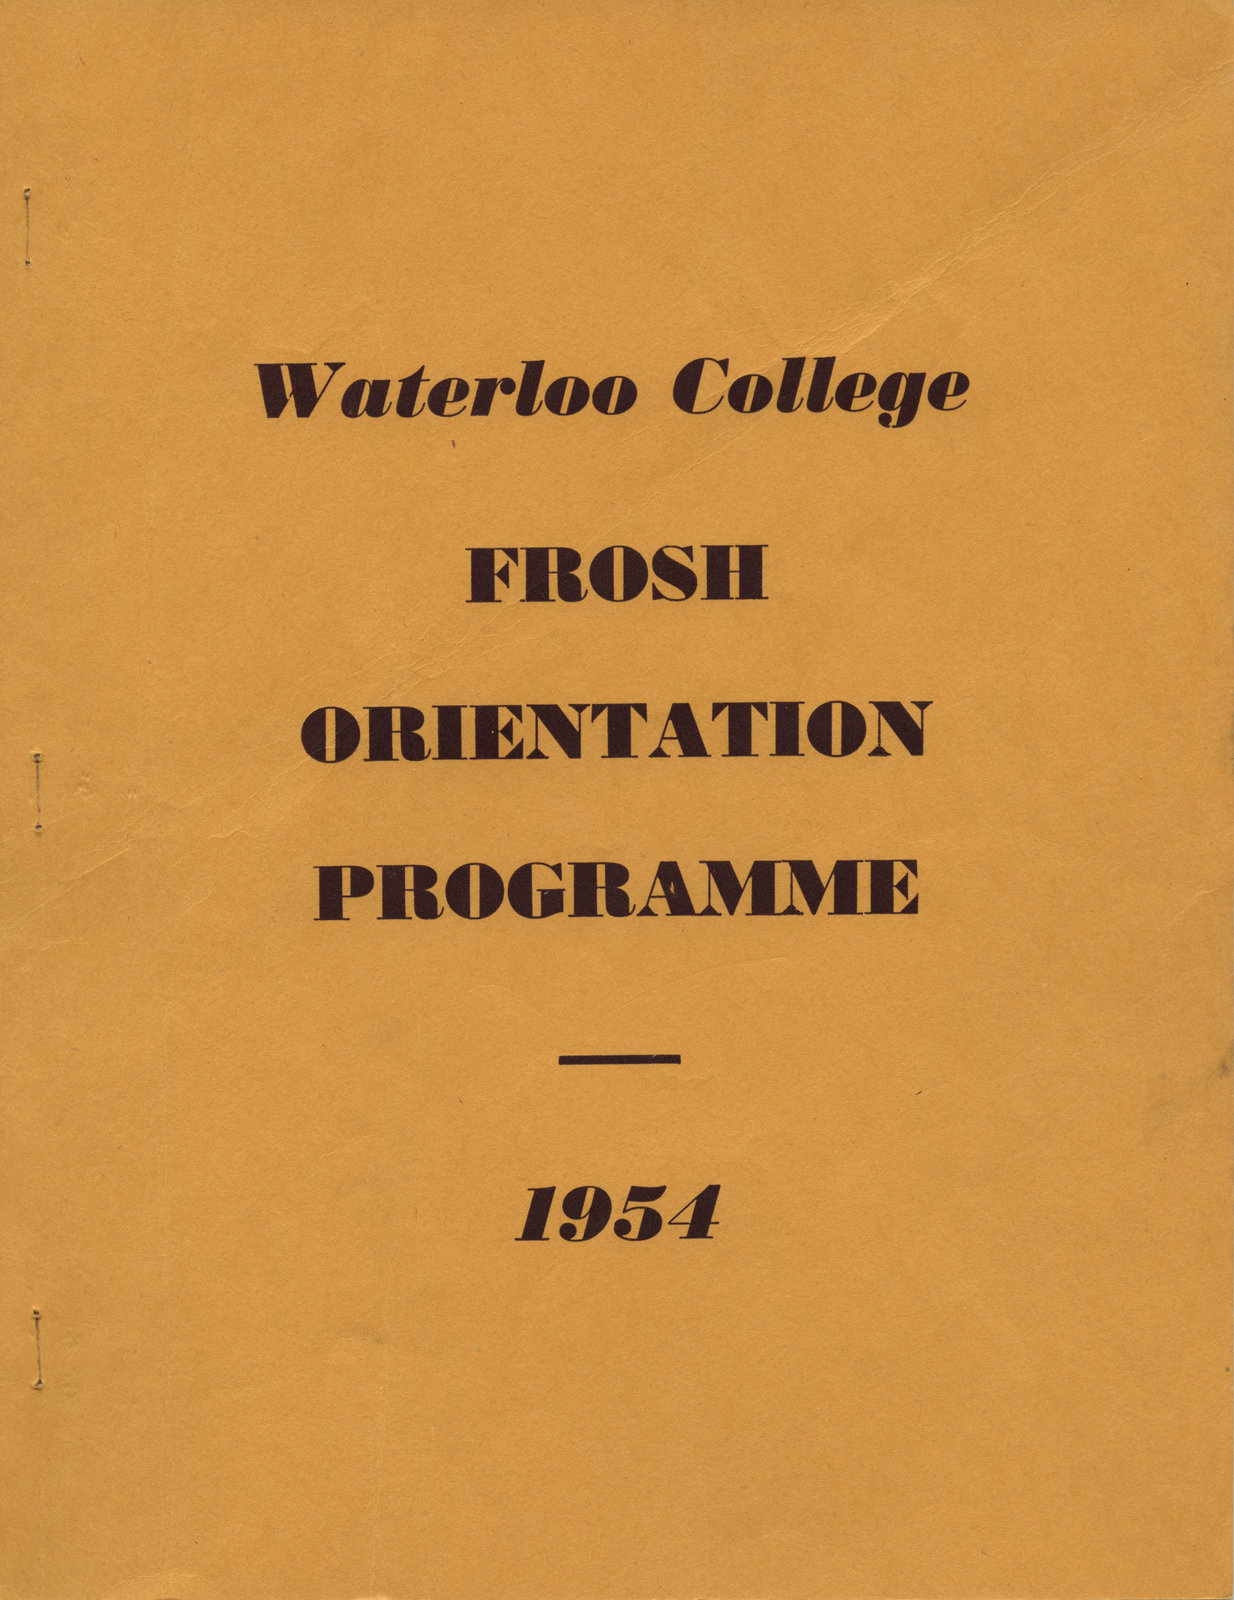 Waterloo College frosh orientation programme, 1954